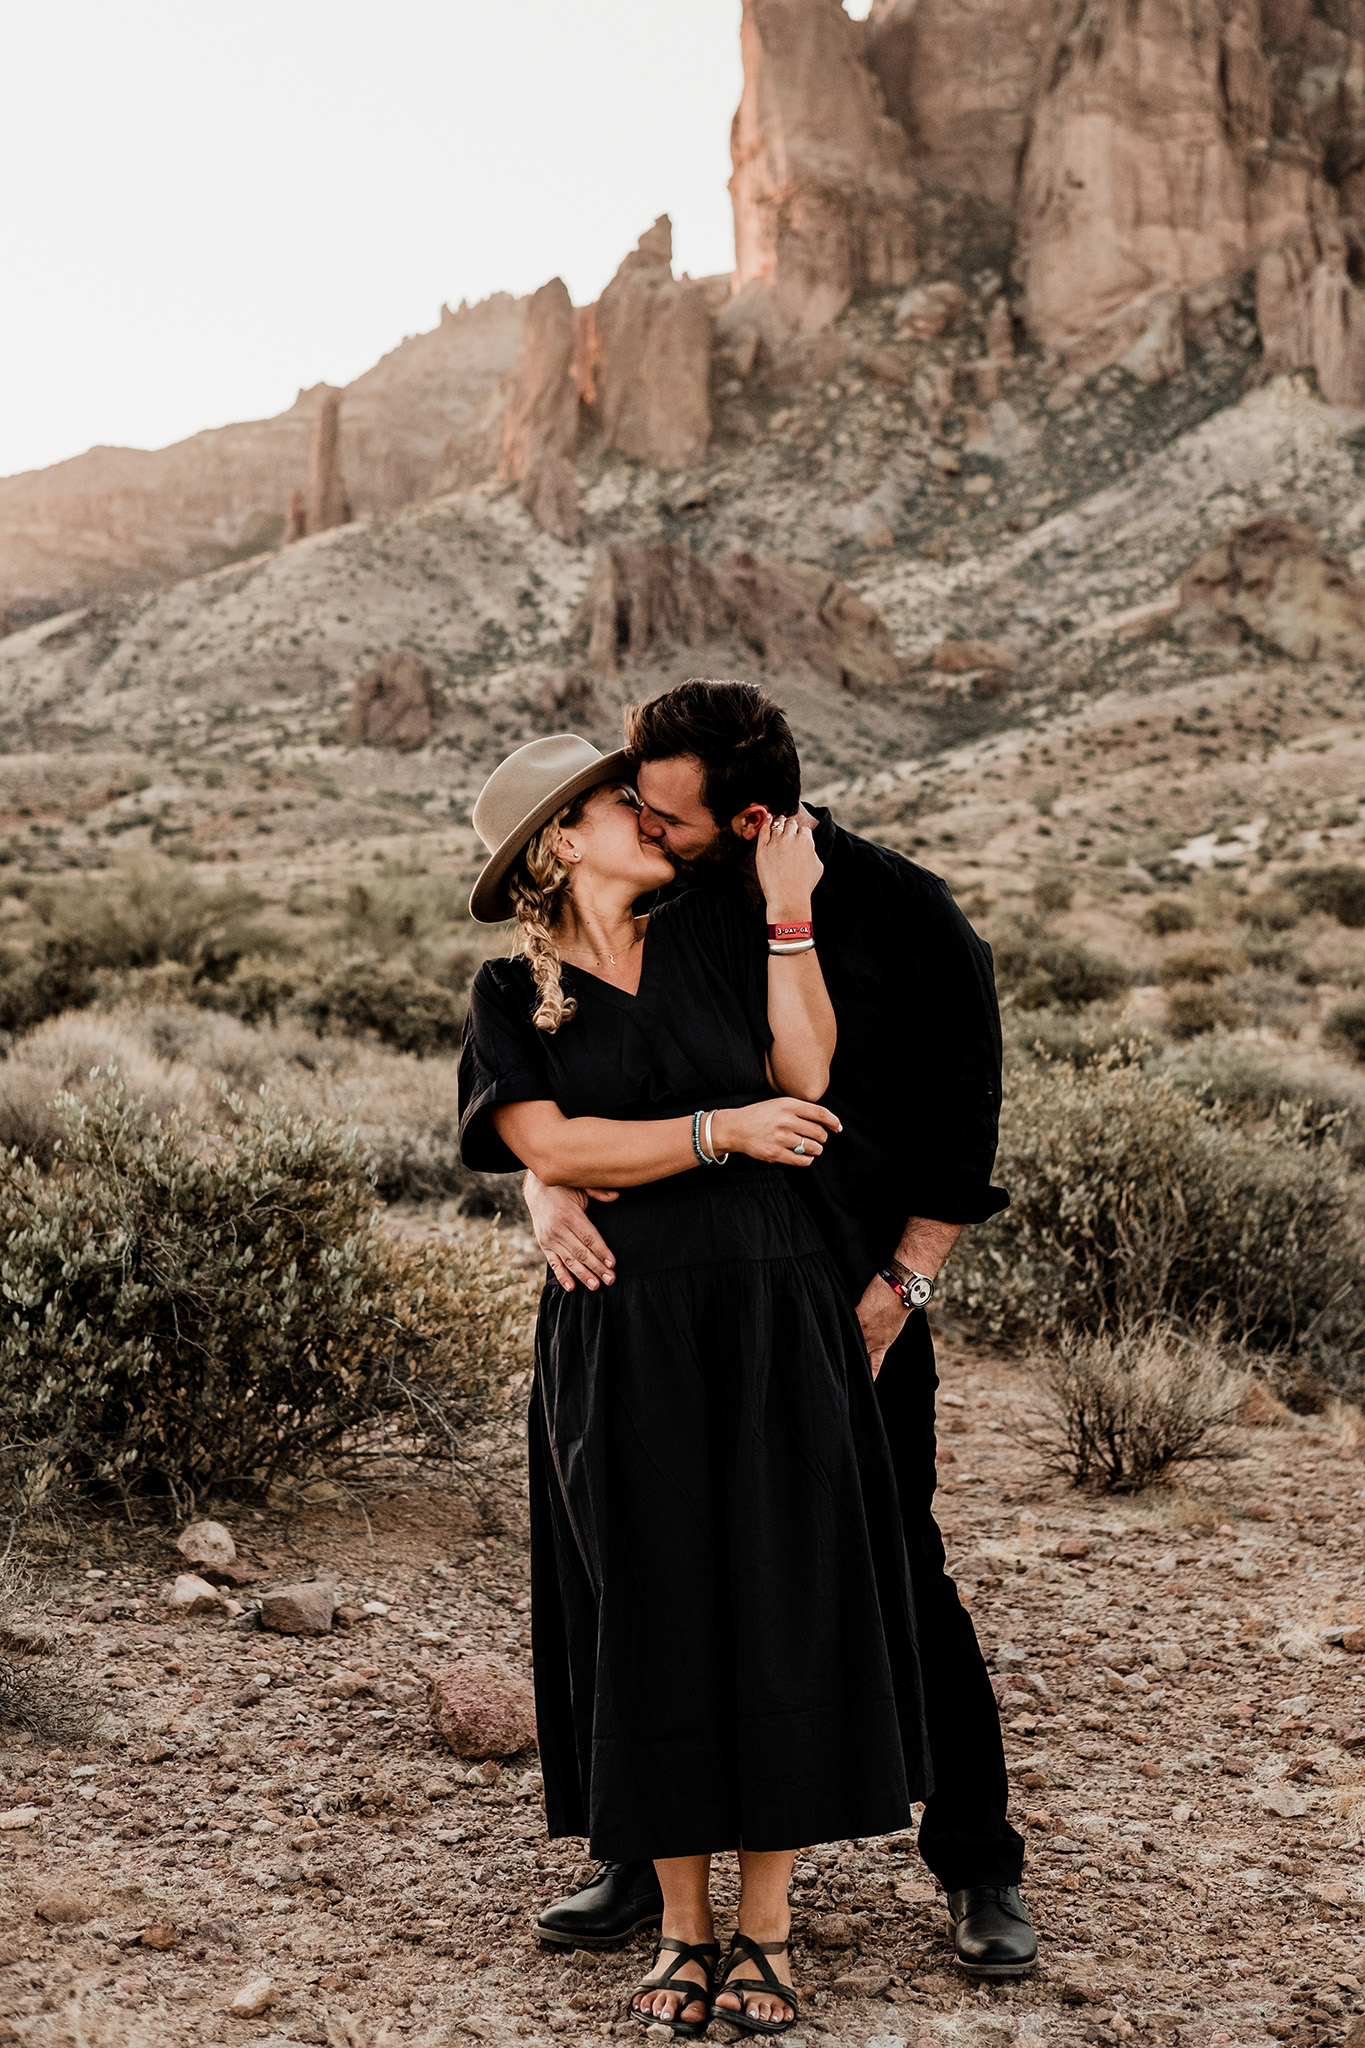 Arizona-Desert-Intimate-Wedding-Photographer-Lost-Dutchman-State-Park (22).jpg